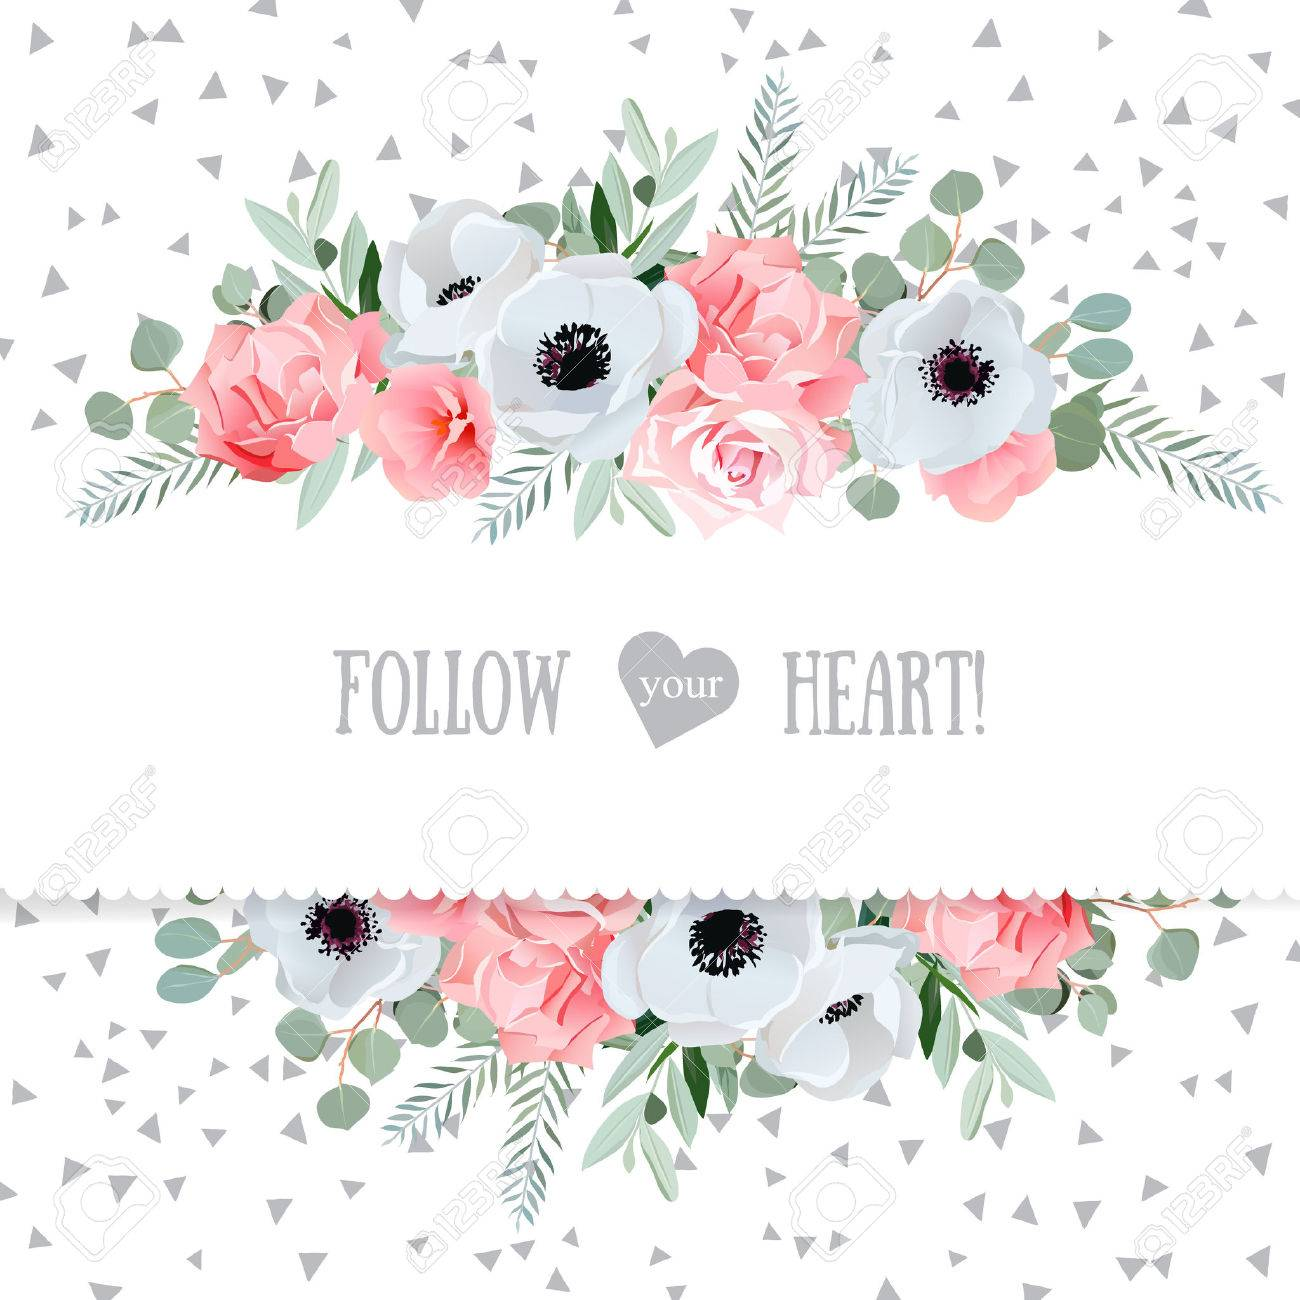 Anemone, rose, pink flowers and decorative eucaliptus leaves mirrored design card. Speckled triangle confetti backdrop. All elements are isolated and editable. - 55736402